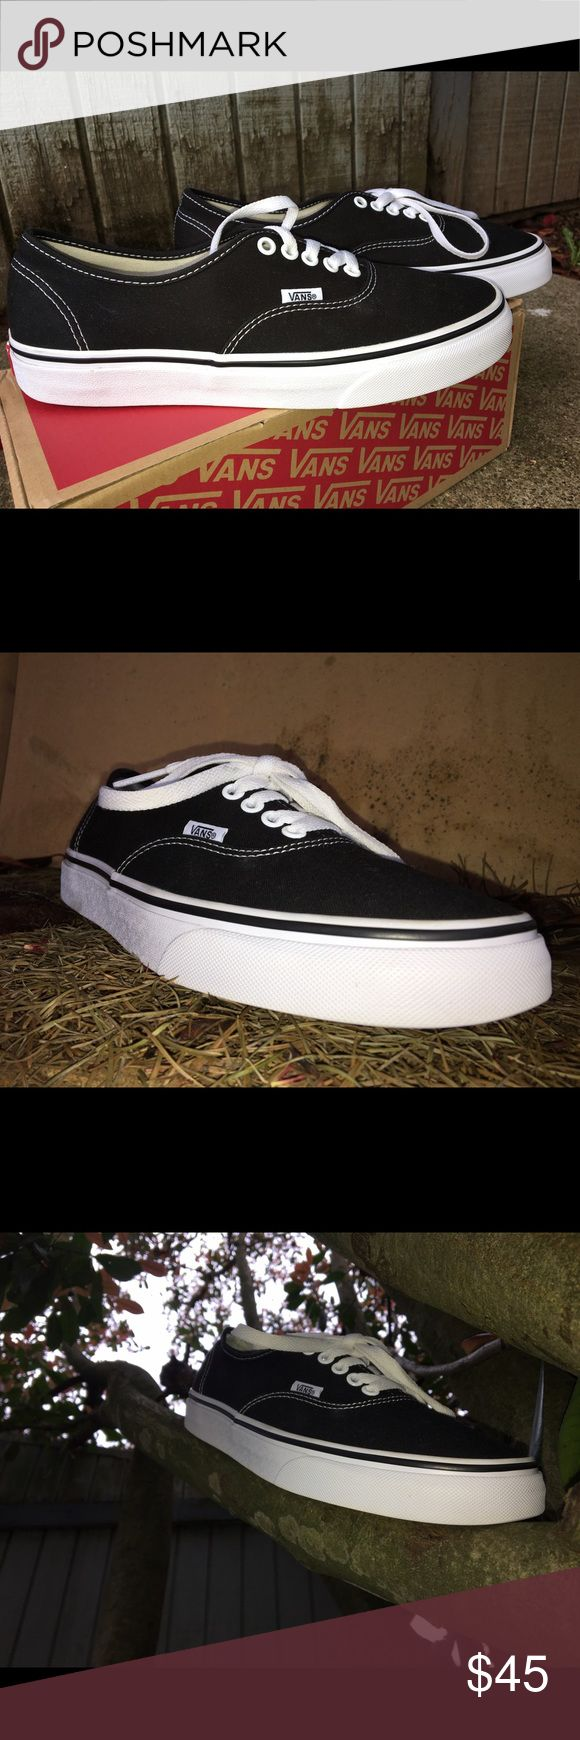 Vans authentic Black and white vans basic silhouette. Size 8 in women's size 9.5. have been used twice. Vans Shoes Sneakers